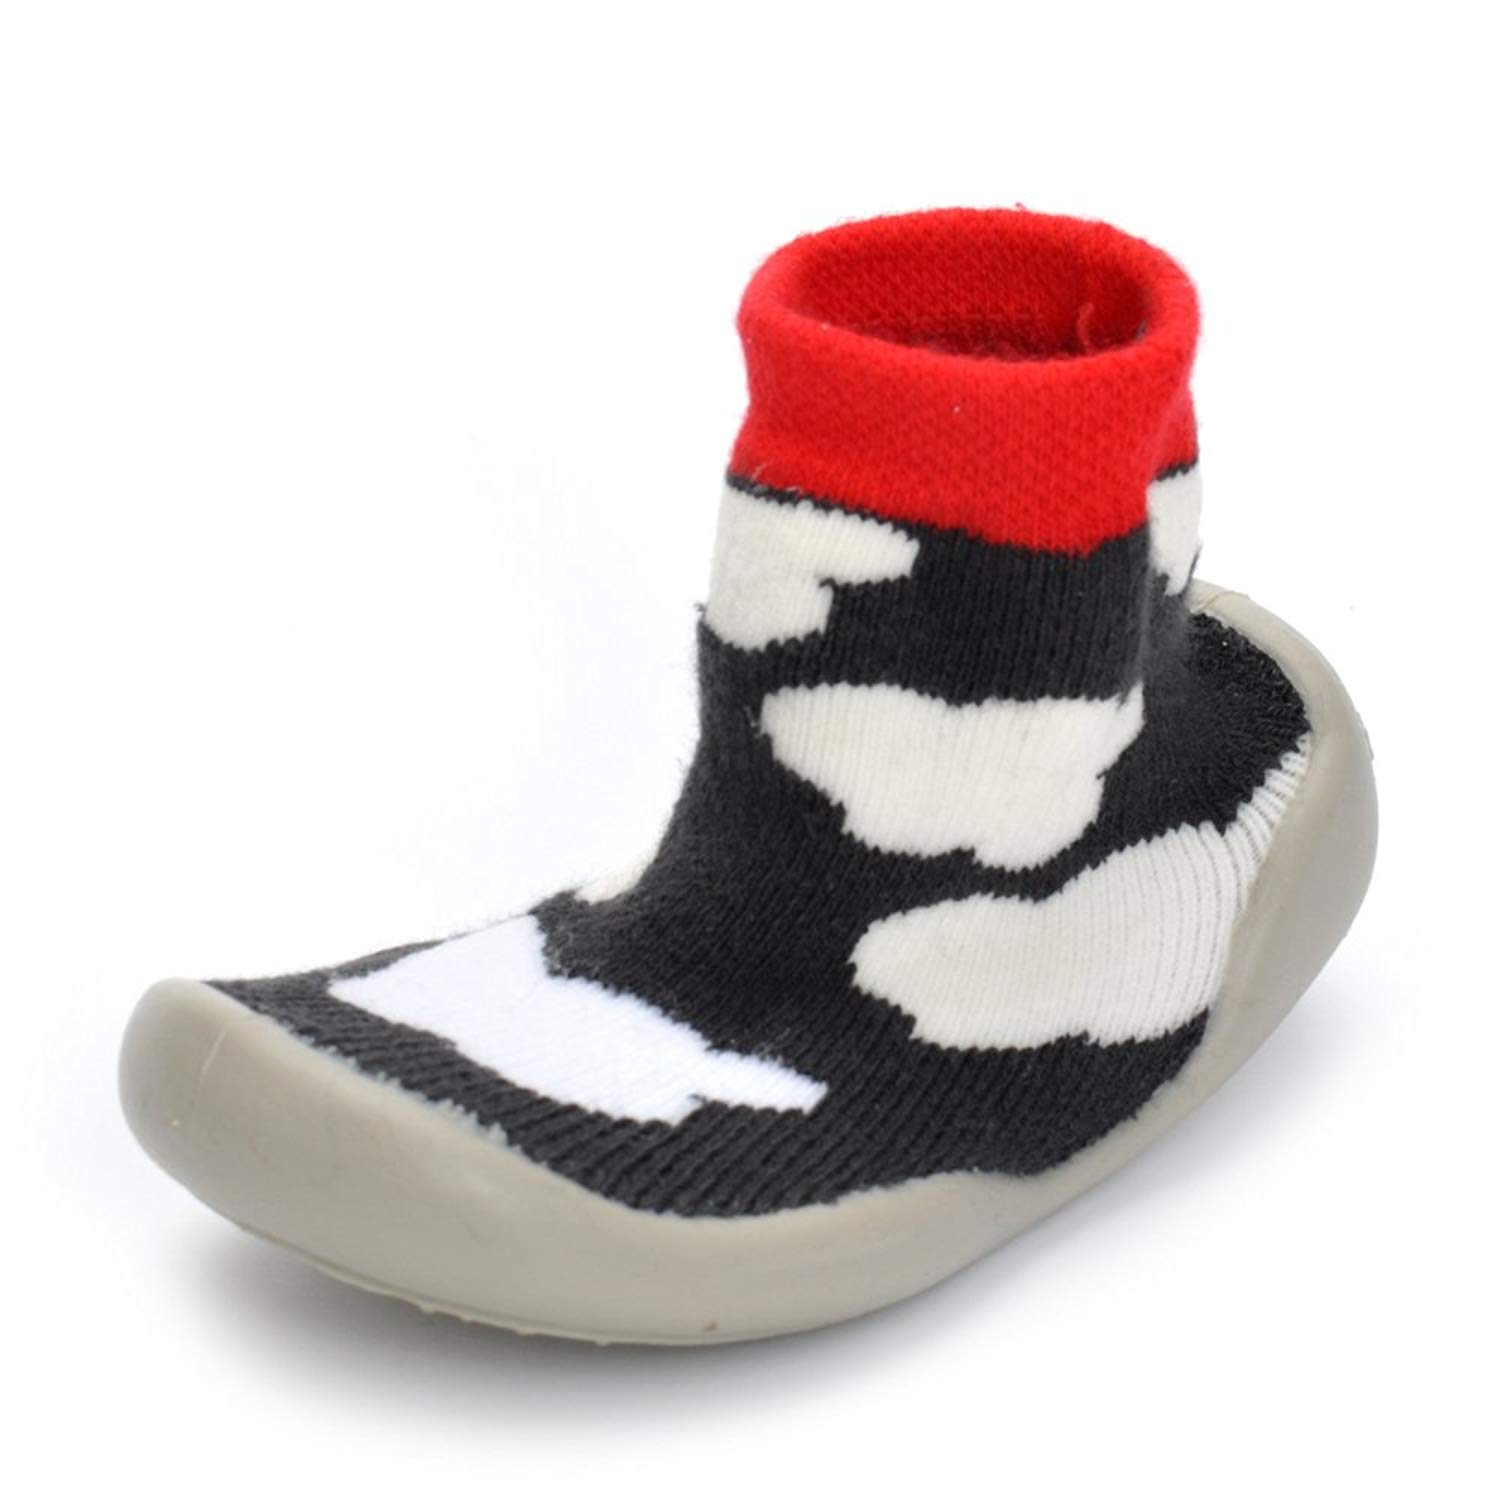 10909cb586d86 Cheap Walking Shoes Baby, find Walking Shoes Baby deals on line at ...